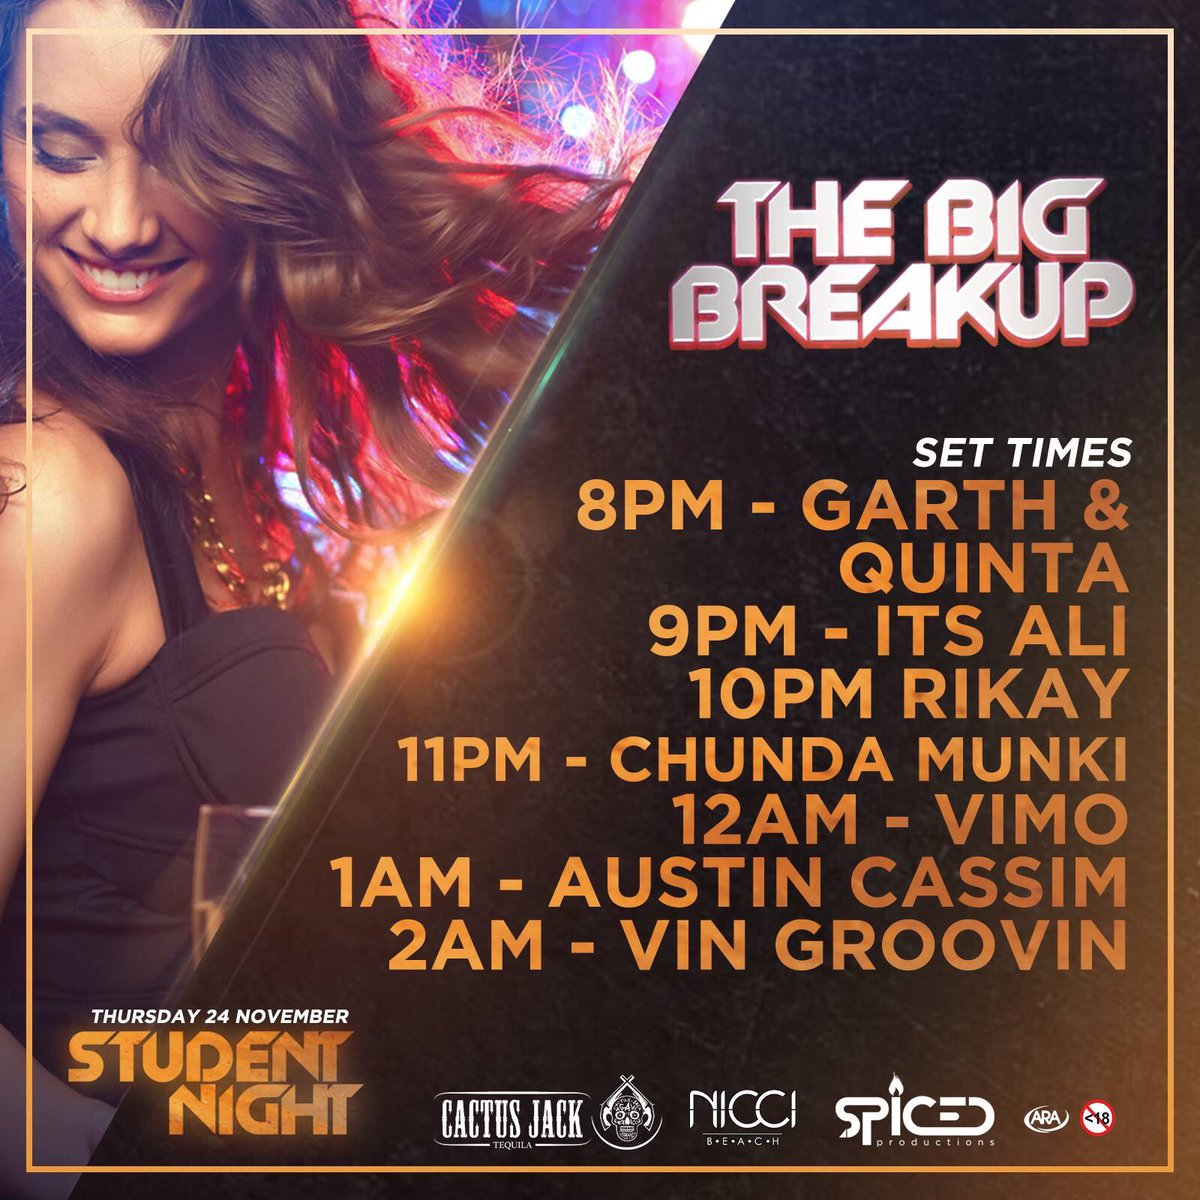 THE BIGGEST BADDEST BREAKUP TONIGHT AT @niccibeach ! ;)  Book a table & receive free Burning Beach tickets ;) danny@spicedproductions.co.za https://t.co/SjGqvd1iSk